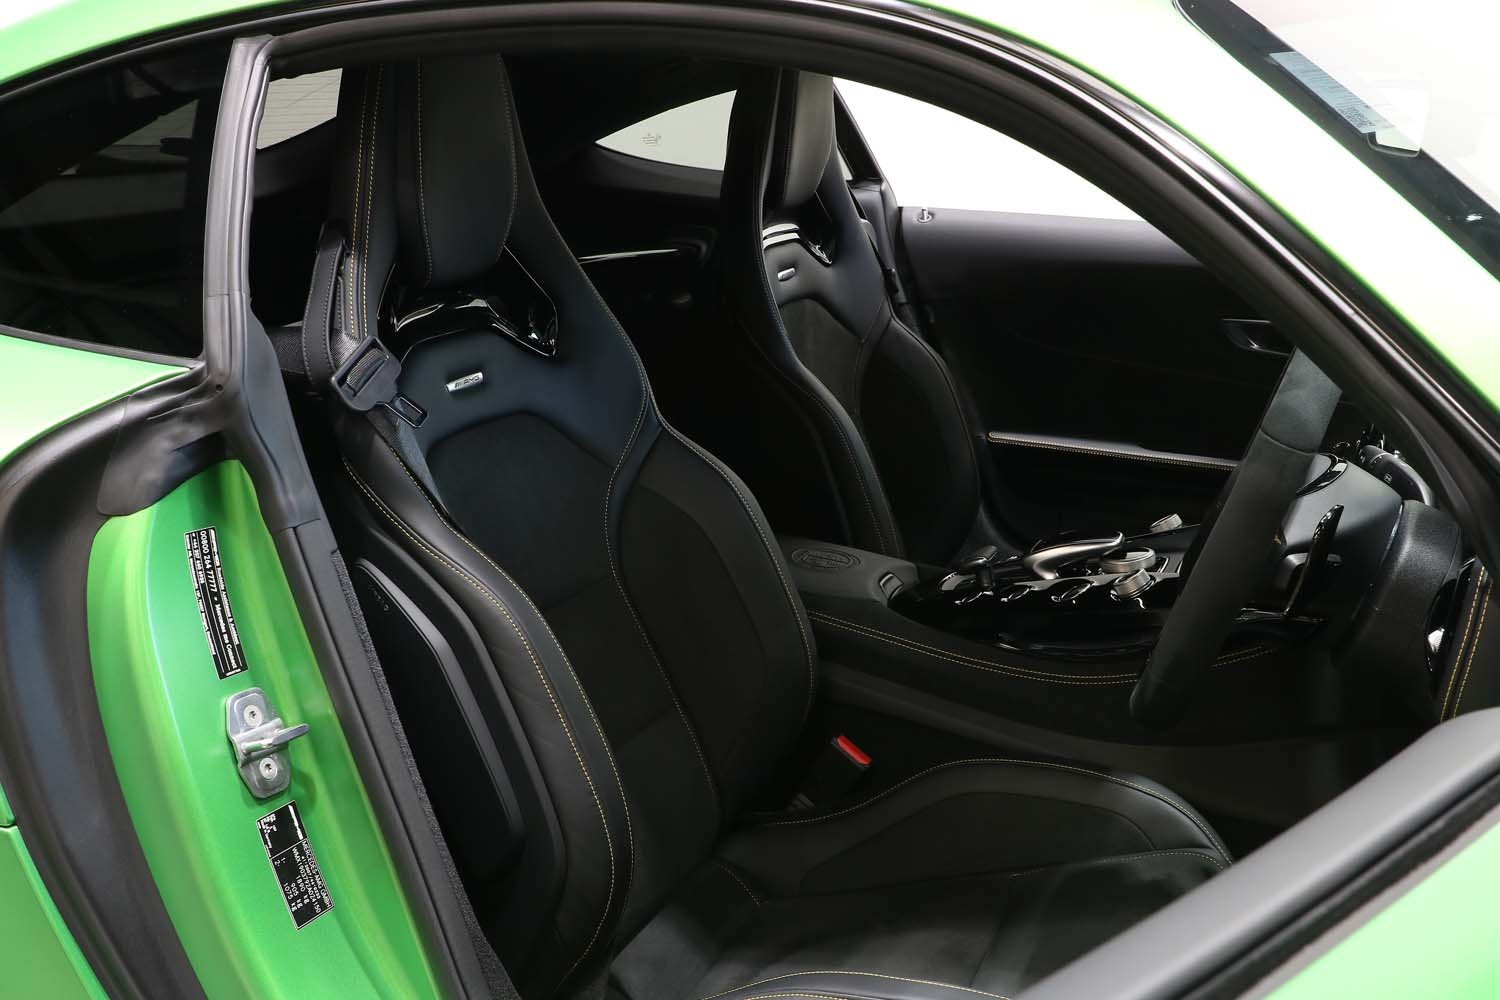 2019 19 MERCEDES BENZ AMG GT-R AUTO  For Sale (picture 5 of 6)